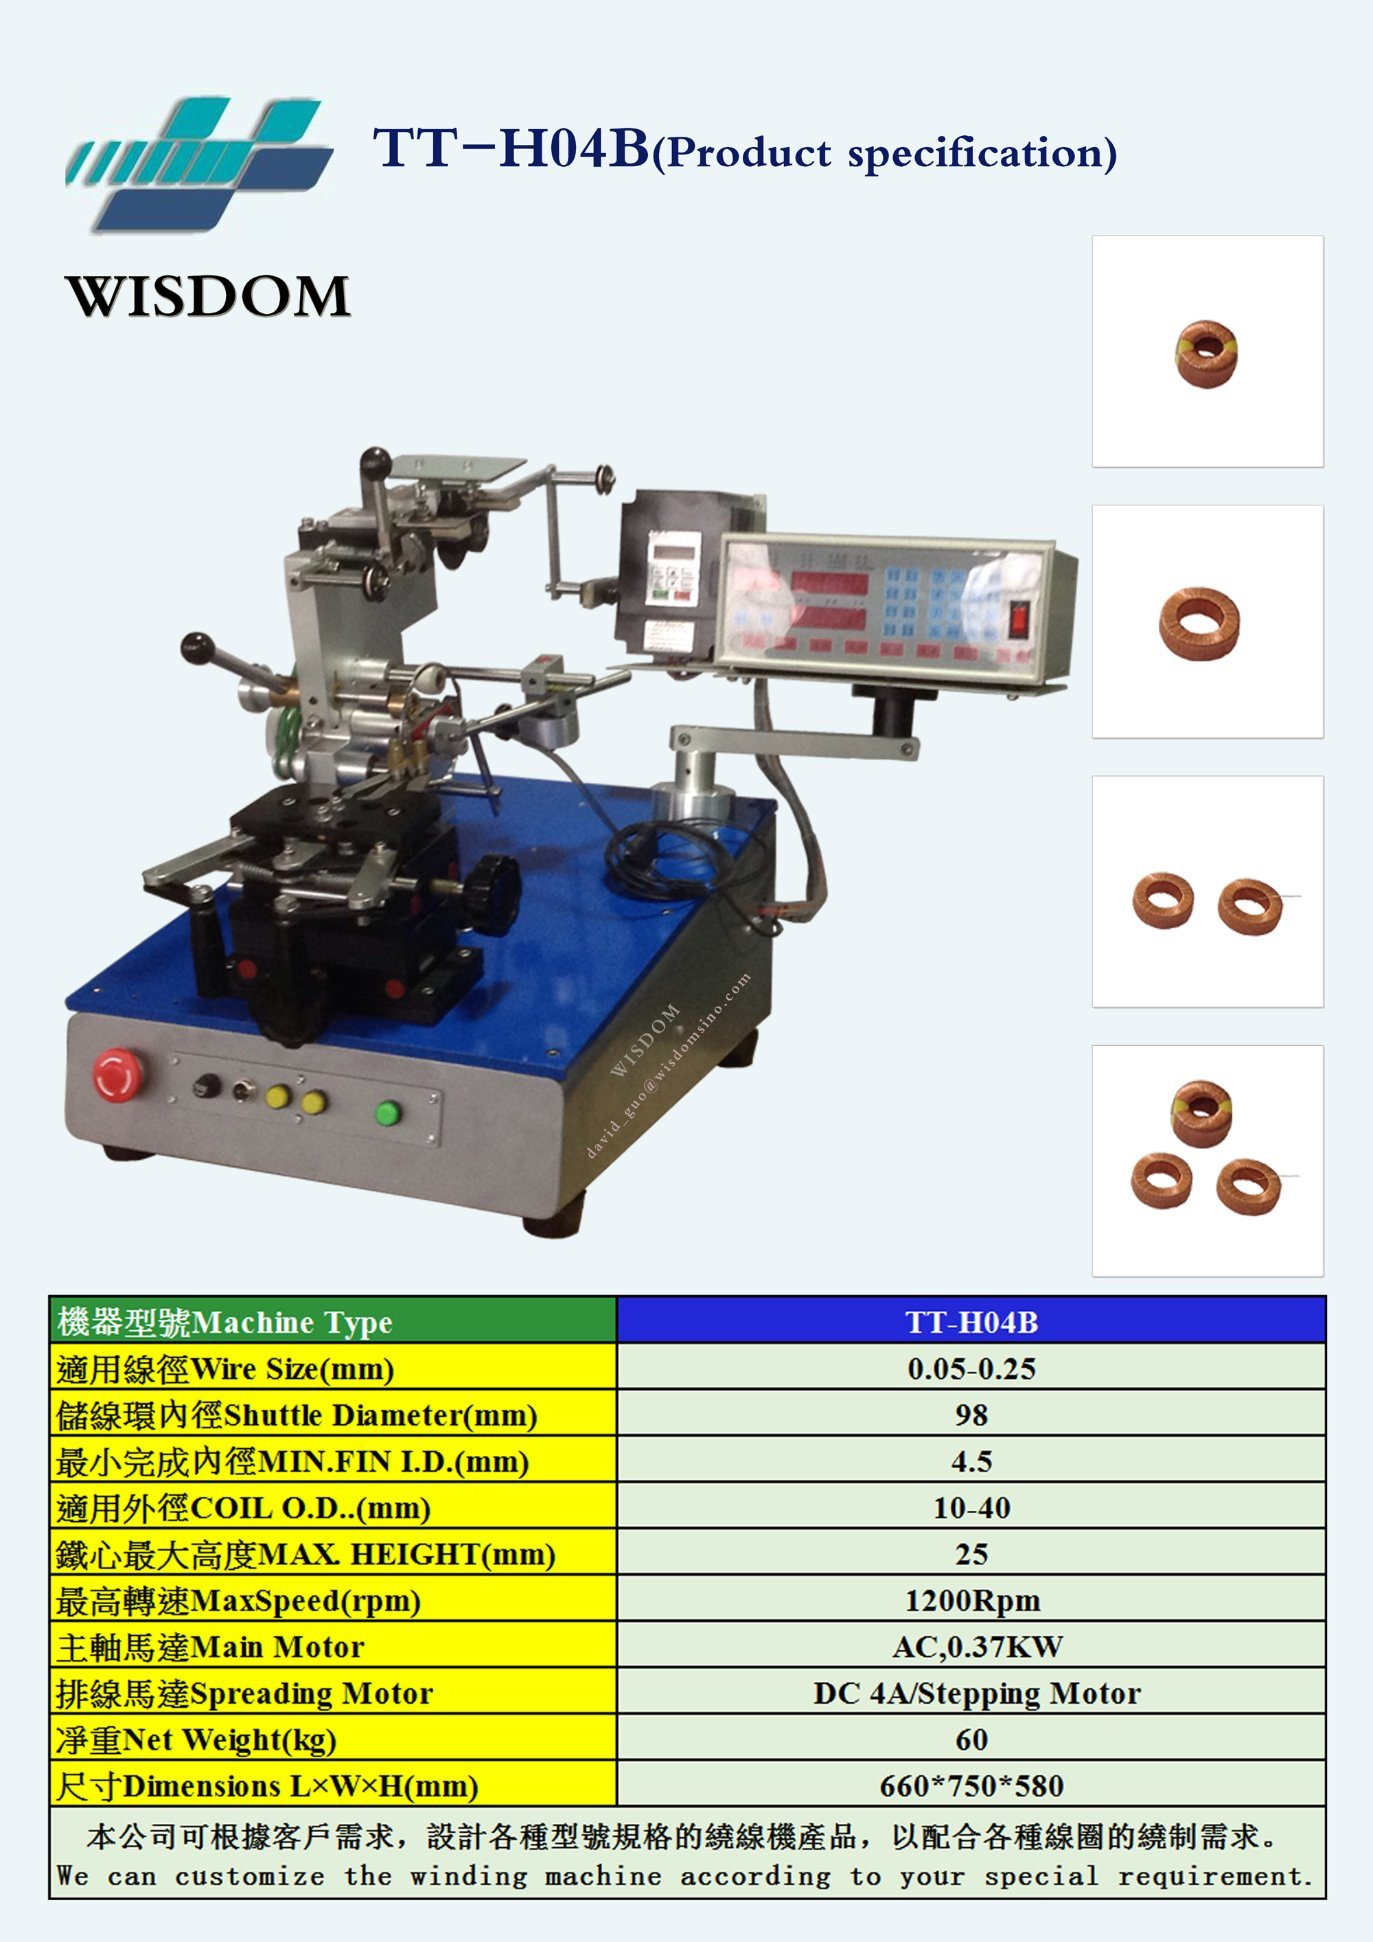 hight resolution of images of wisdom tt h06a toroidal coil winding machine for inductor relay transformer common mode choke voltage regulator